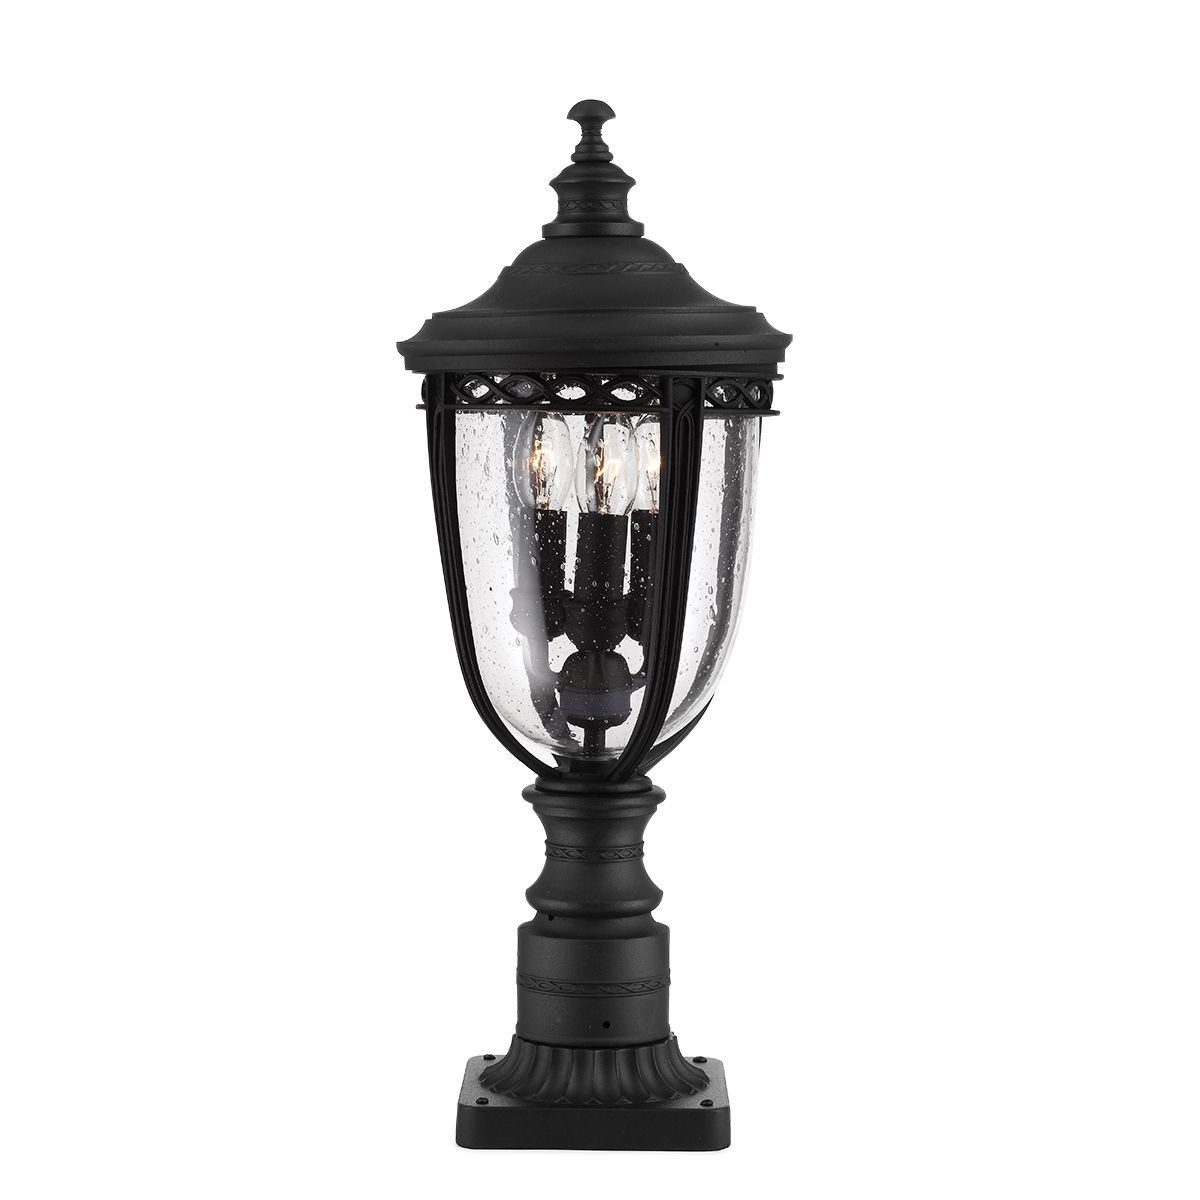 Feiss English Bridle Medium Pedestal Lantern Light Black